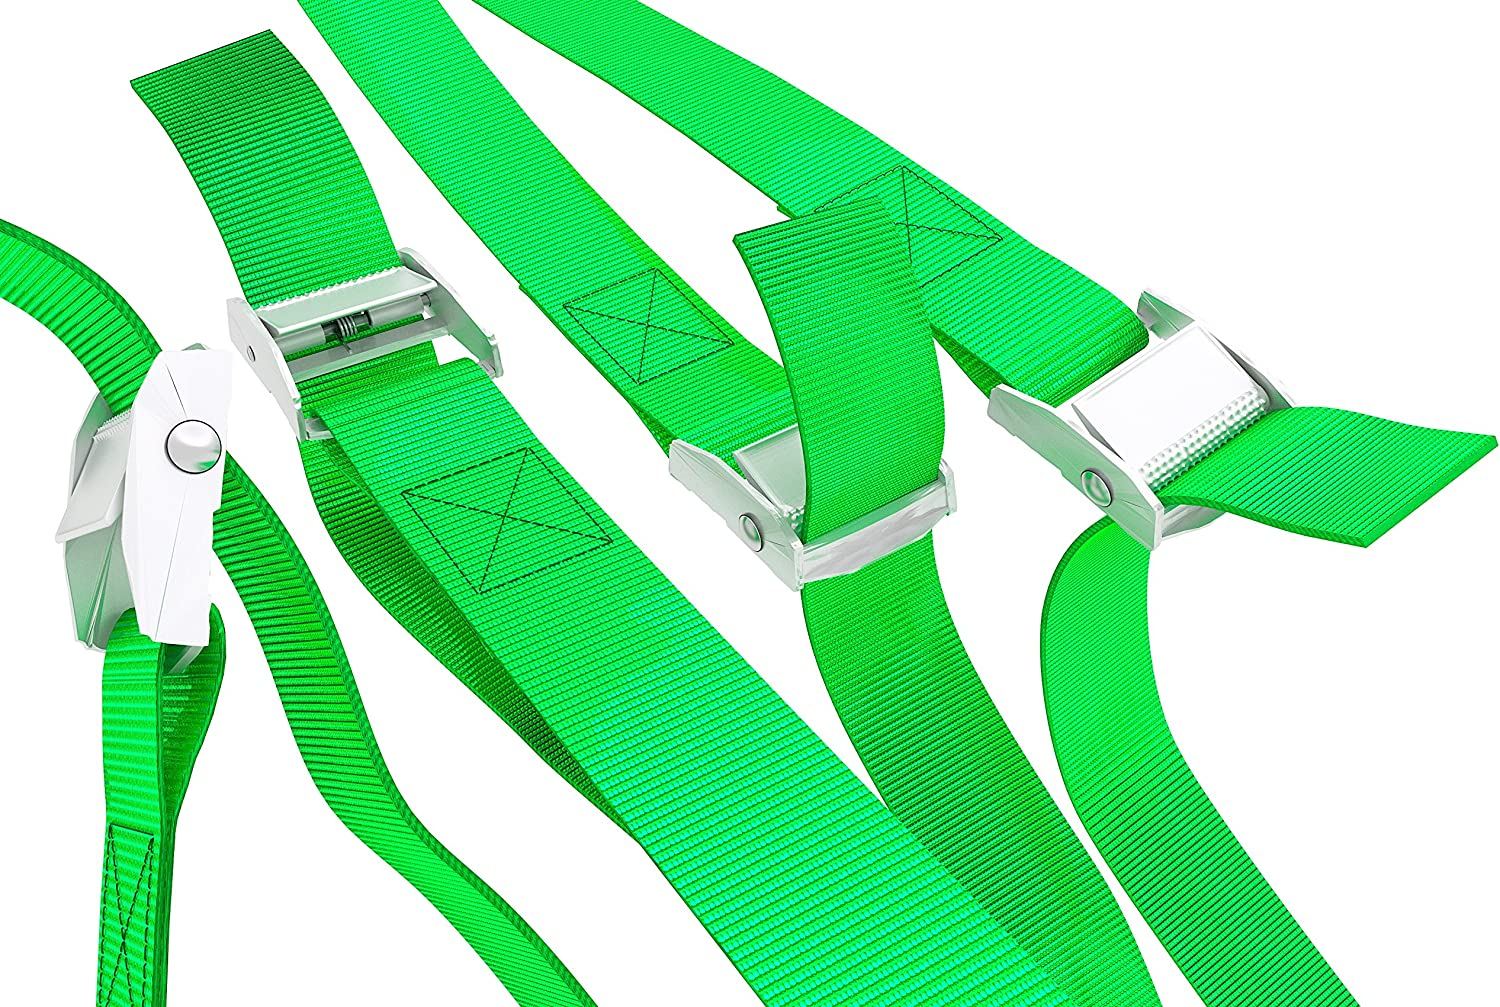 """Green WowThings! Kayak Securing Adjustable Cargo Straps for Roof Rack Canoe 1/""""x13Foot Up to 600lbs Long Tie Down Lashing Cam Lock Buckle 5 Pack"""